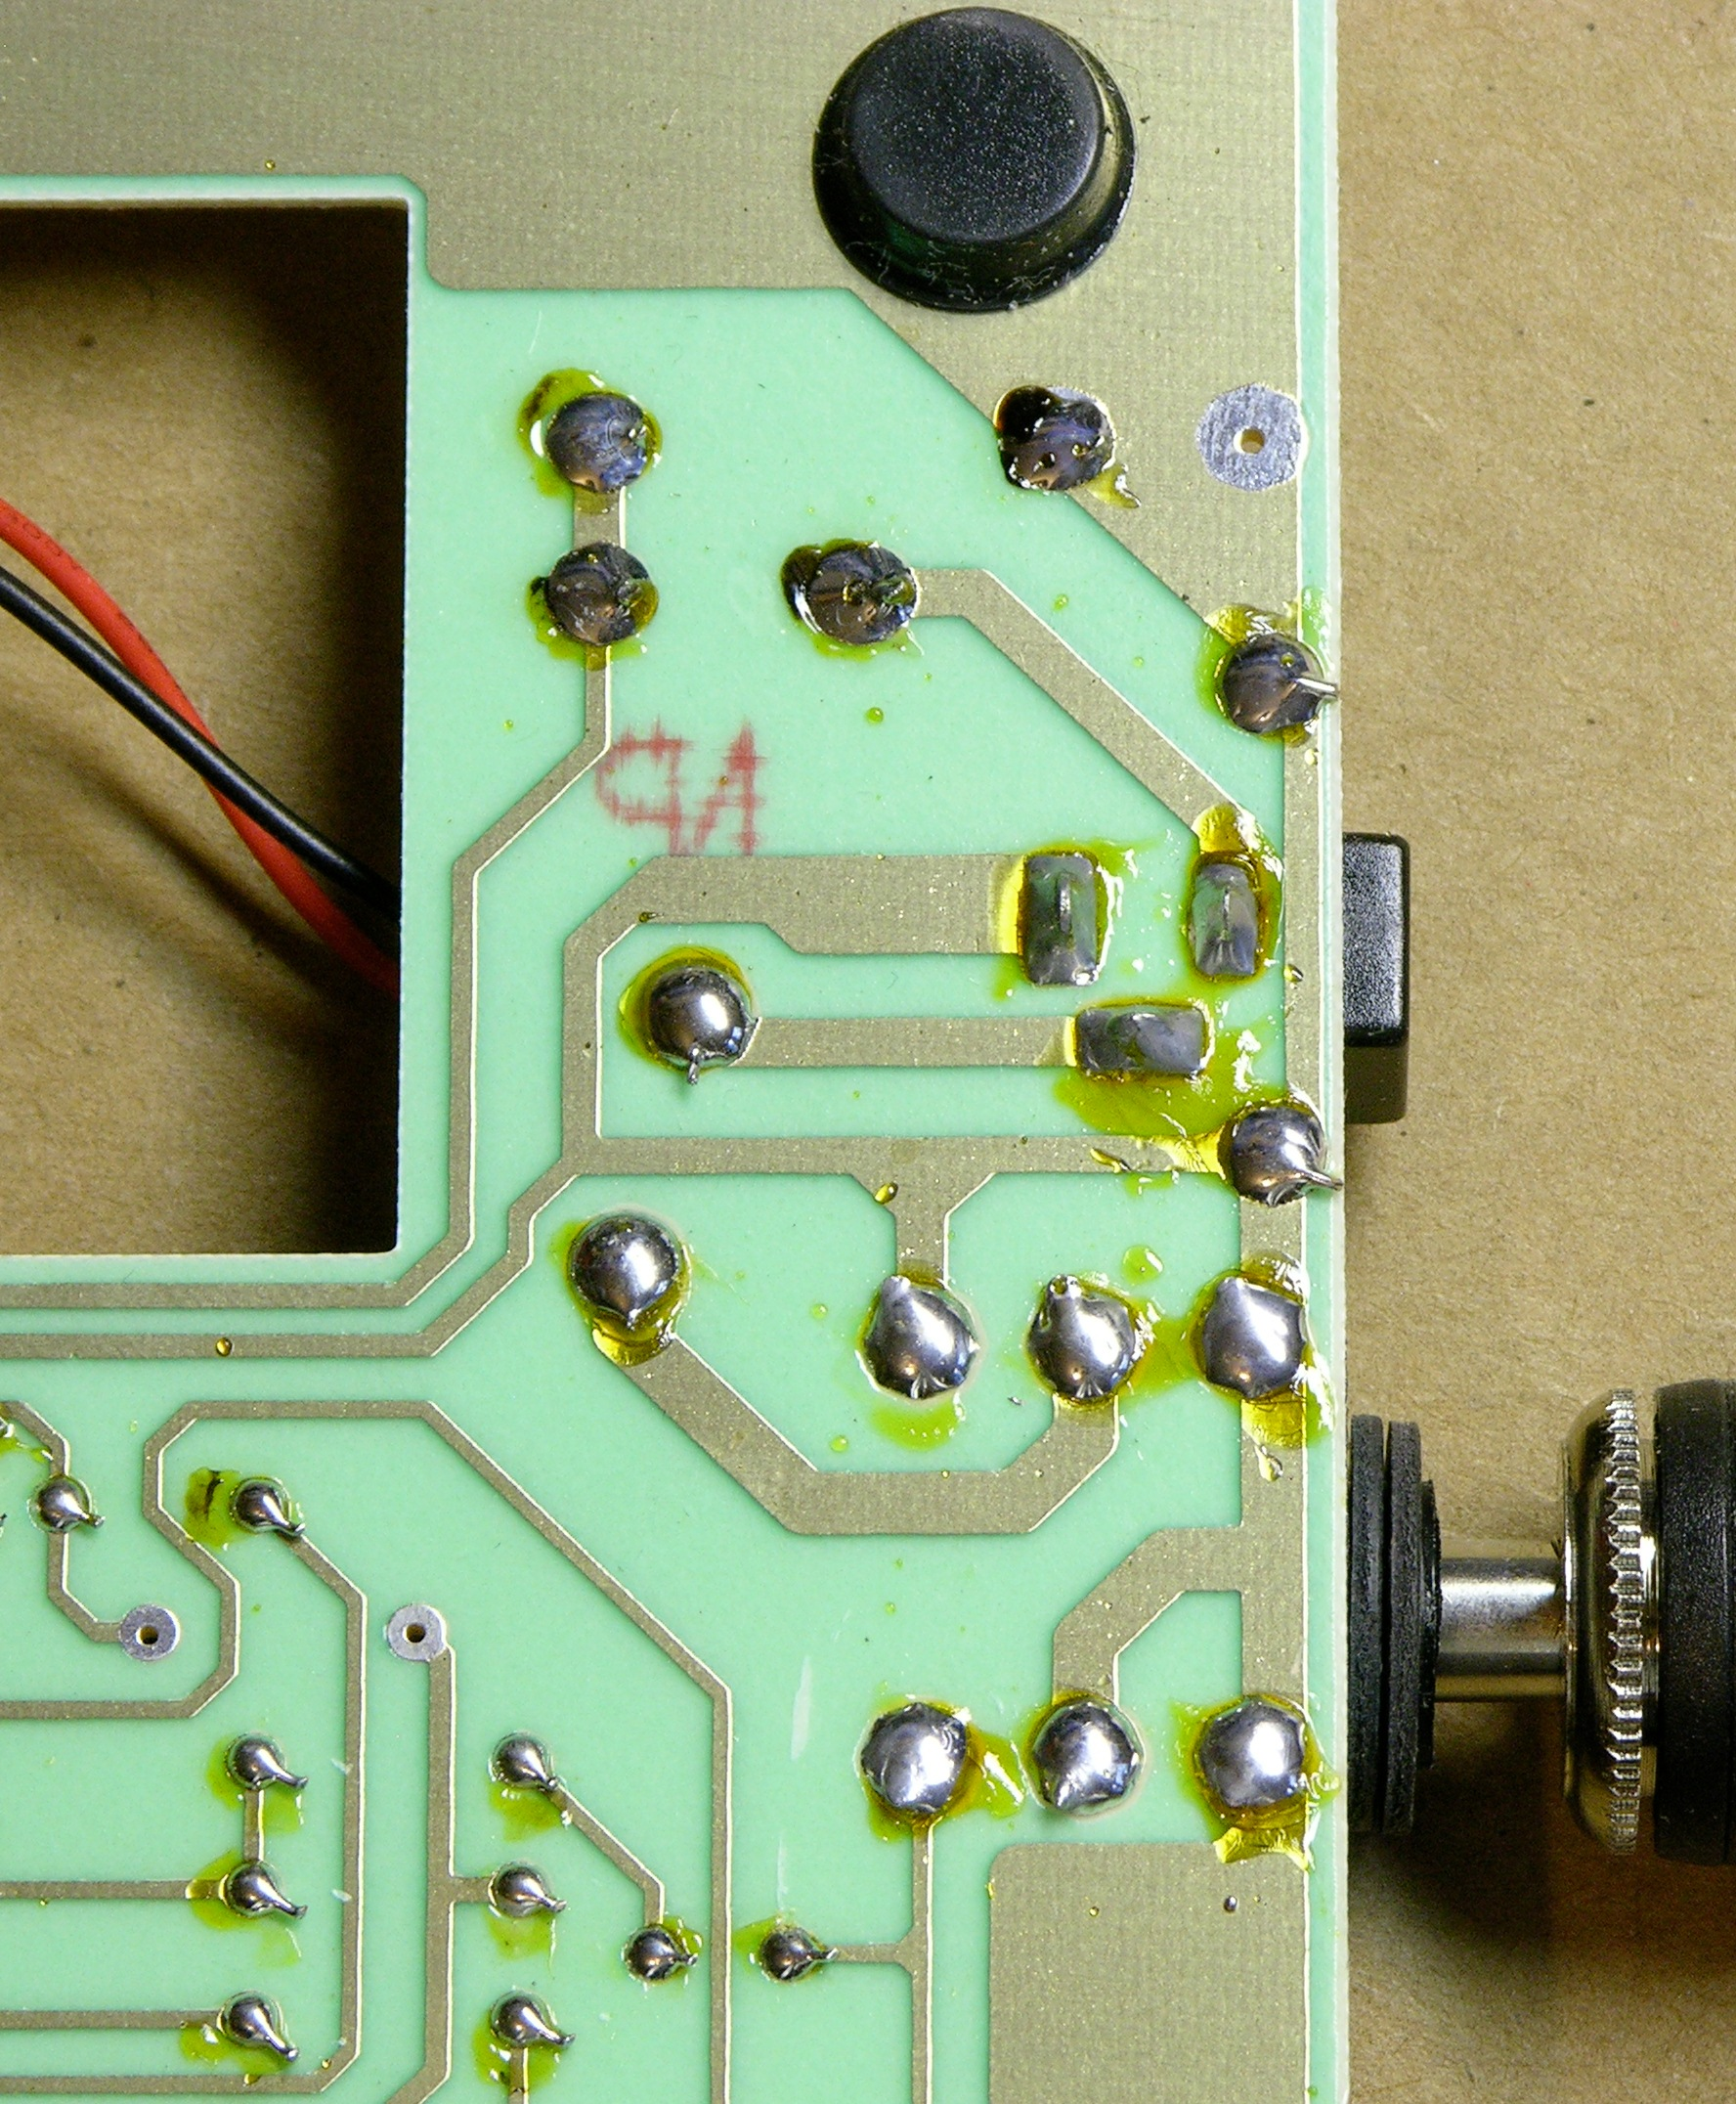 Repairing a Bad Horsie 2 Wah Pedal with Power Damage « Keith's